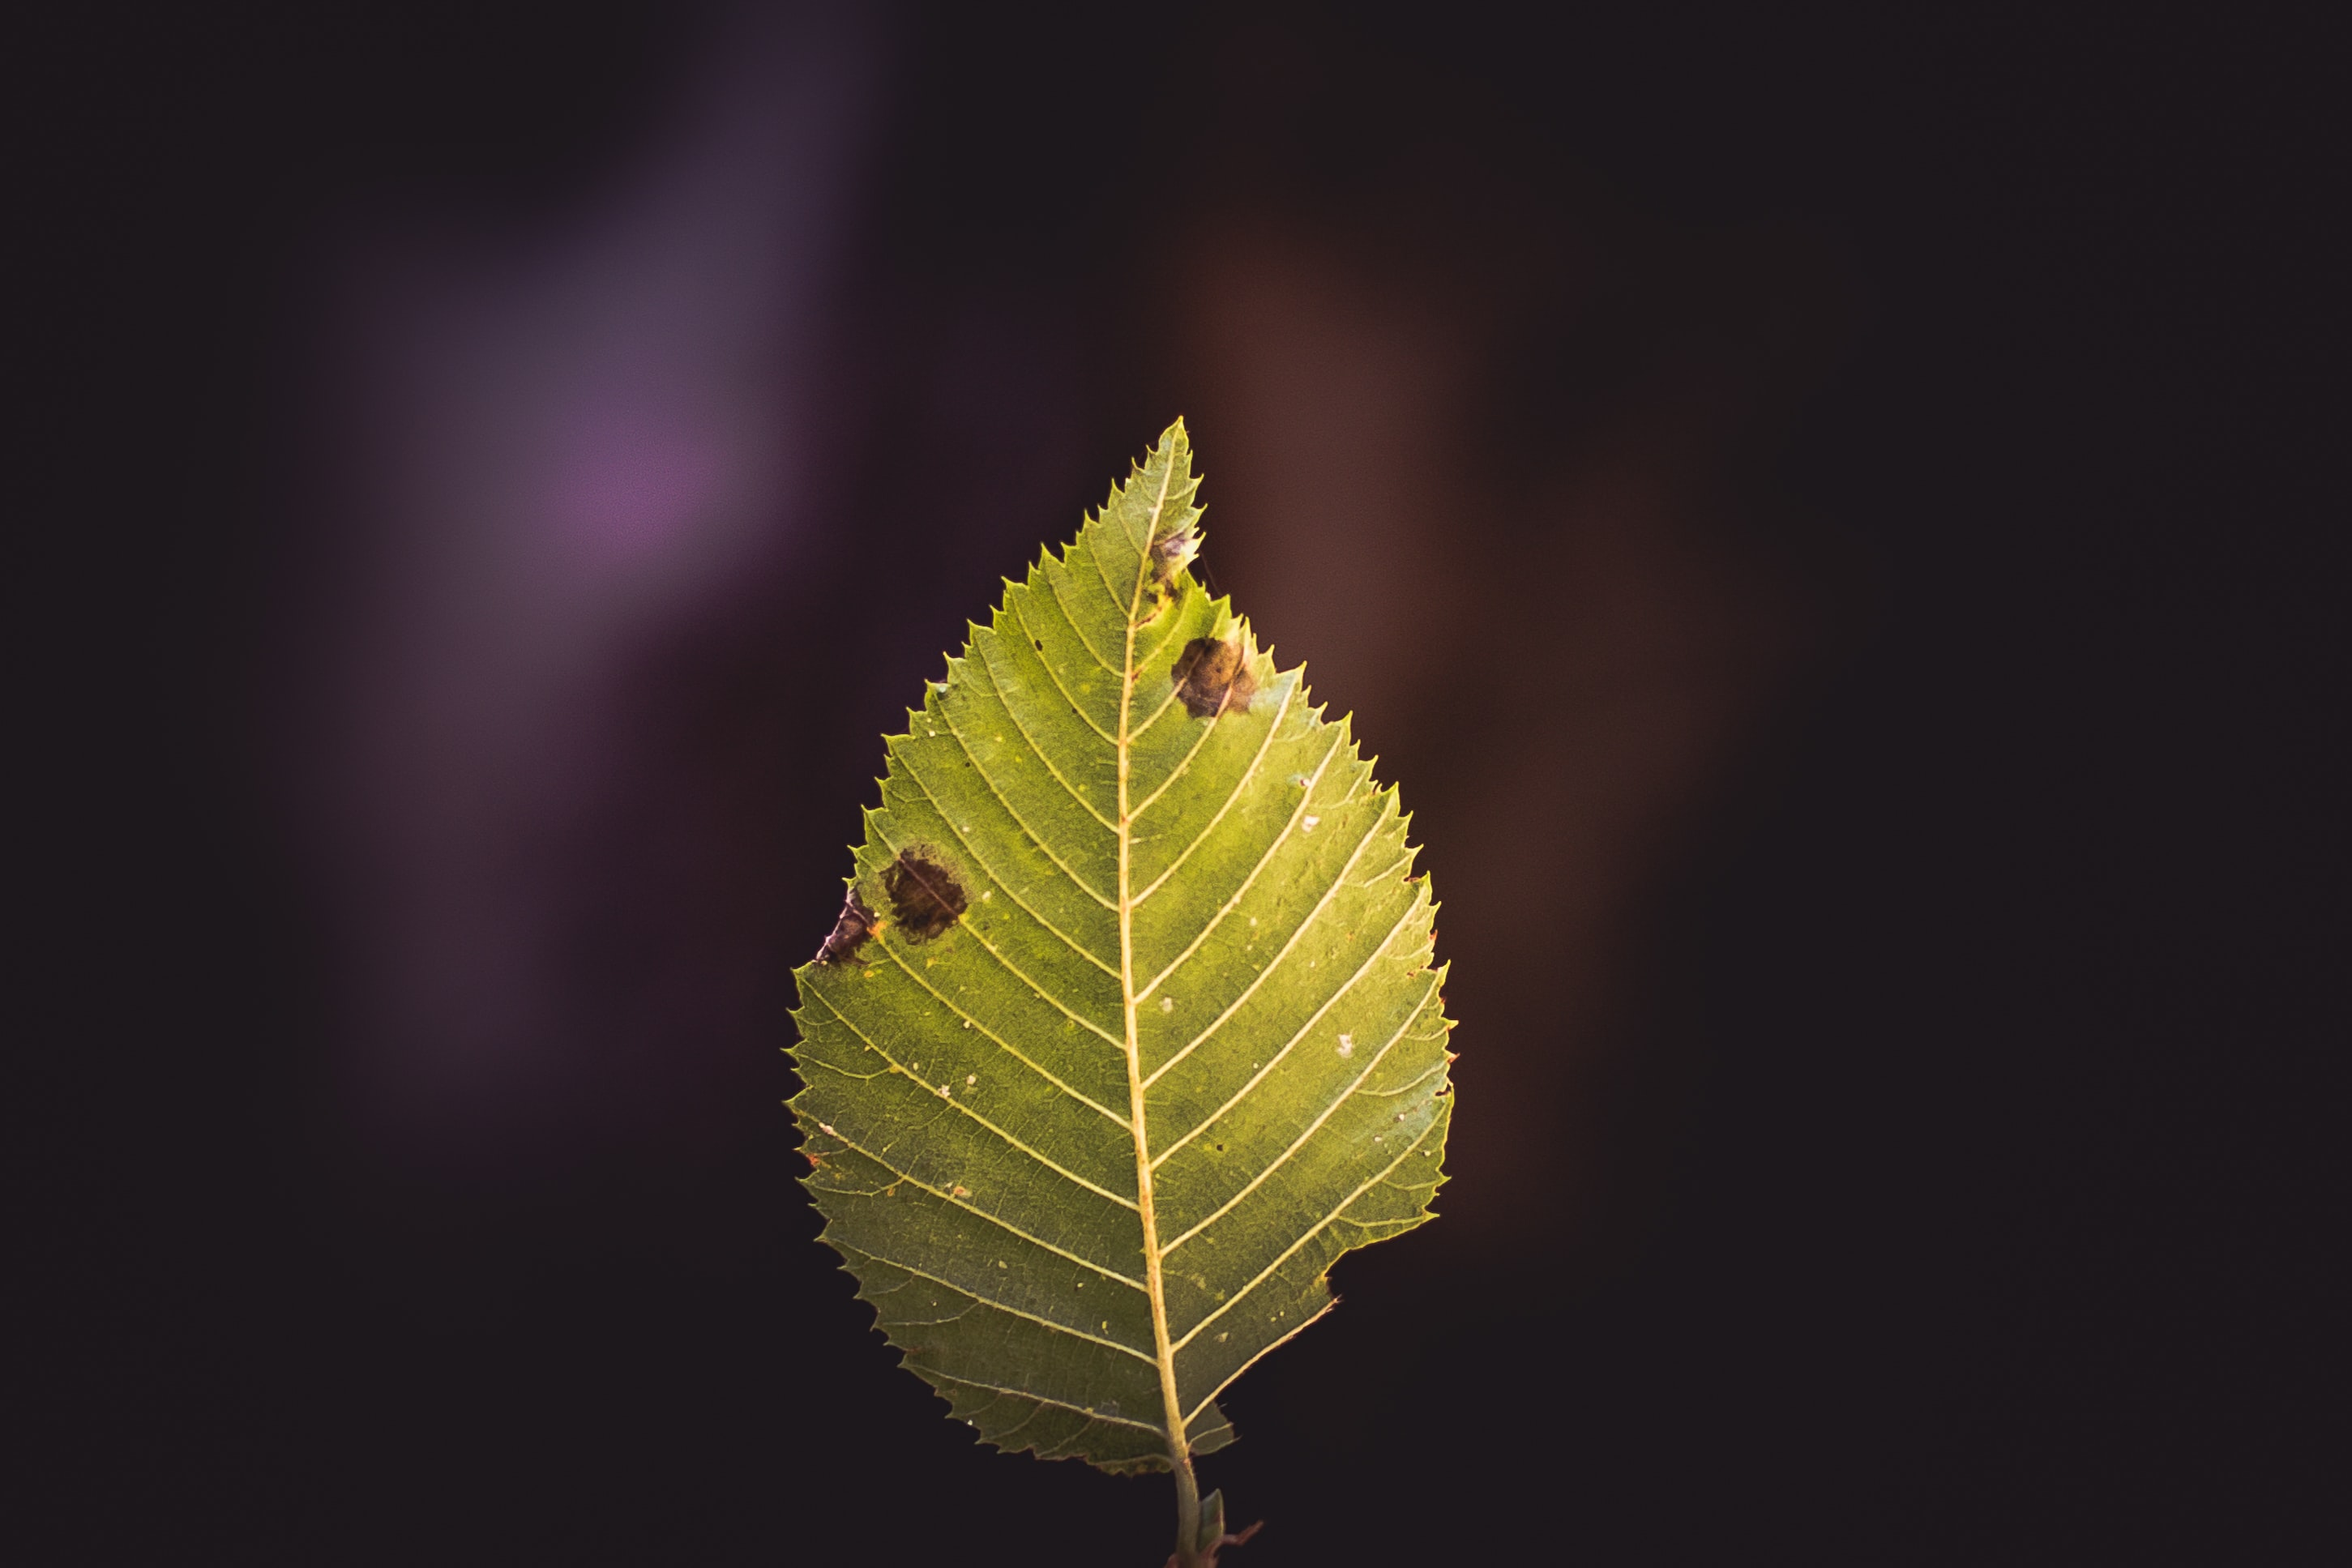 closeup photography of green leaf